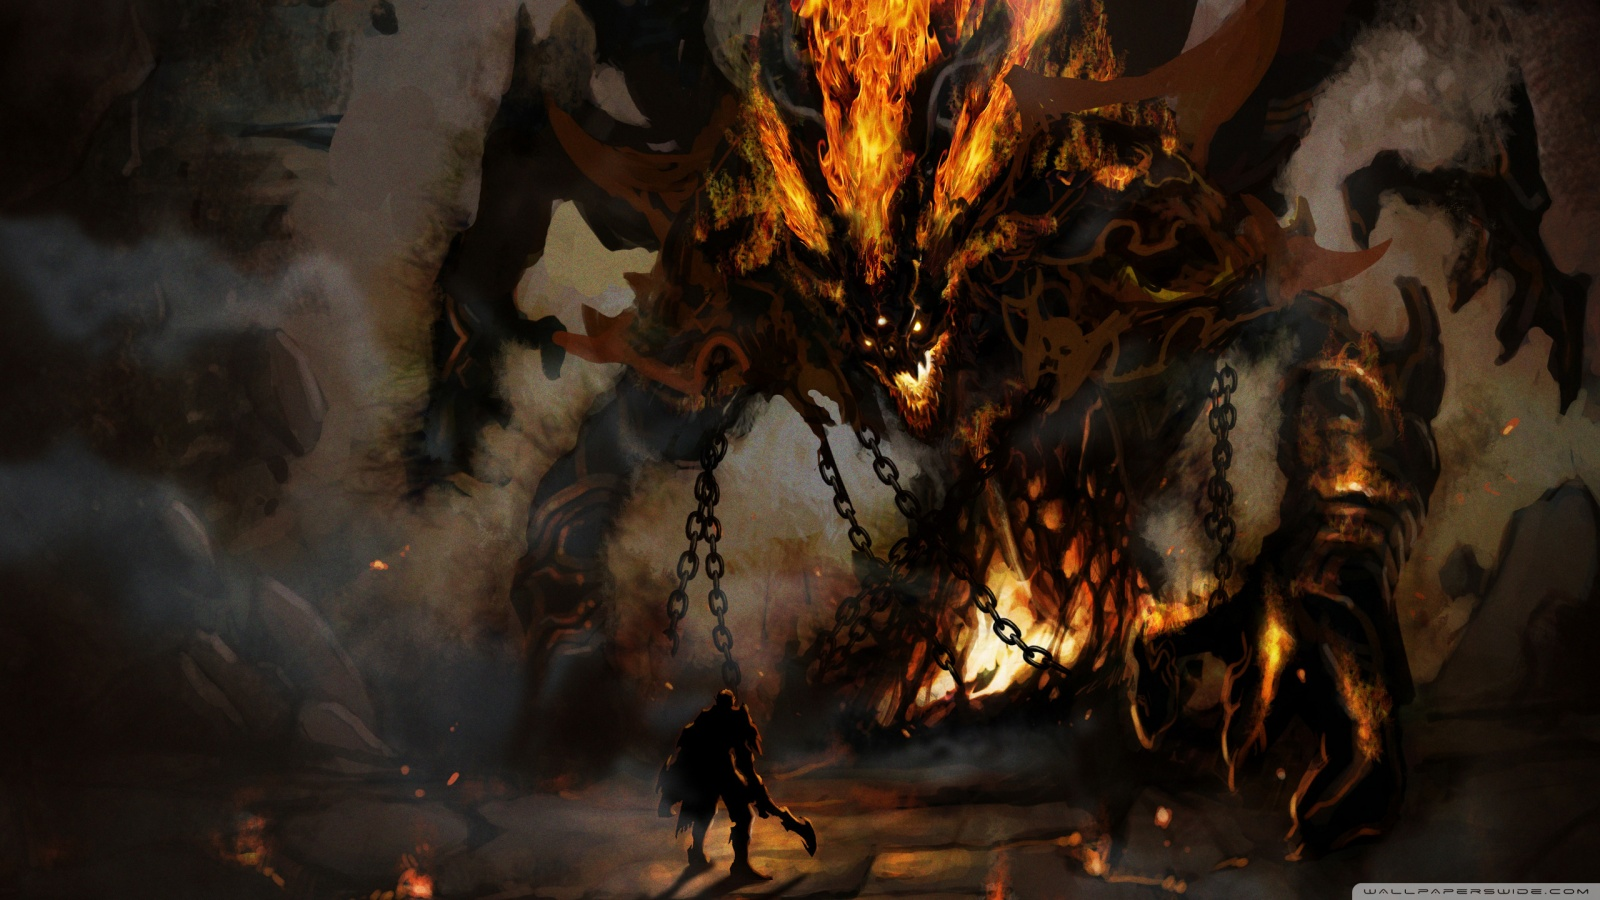 Fire demon wallpaper 1600x900